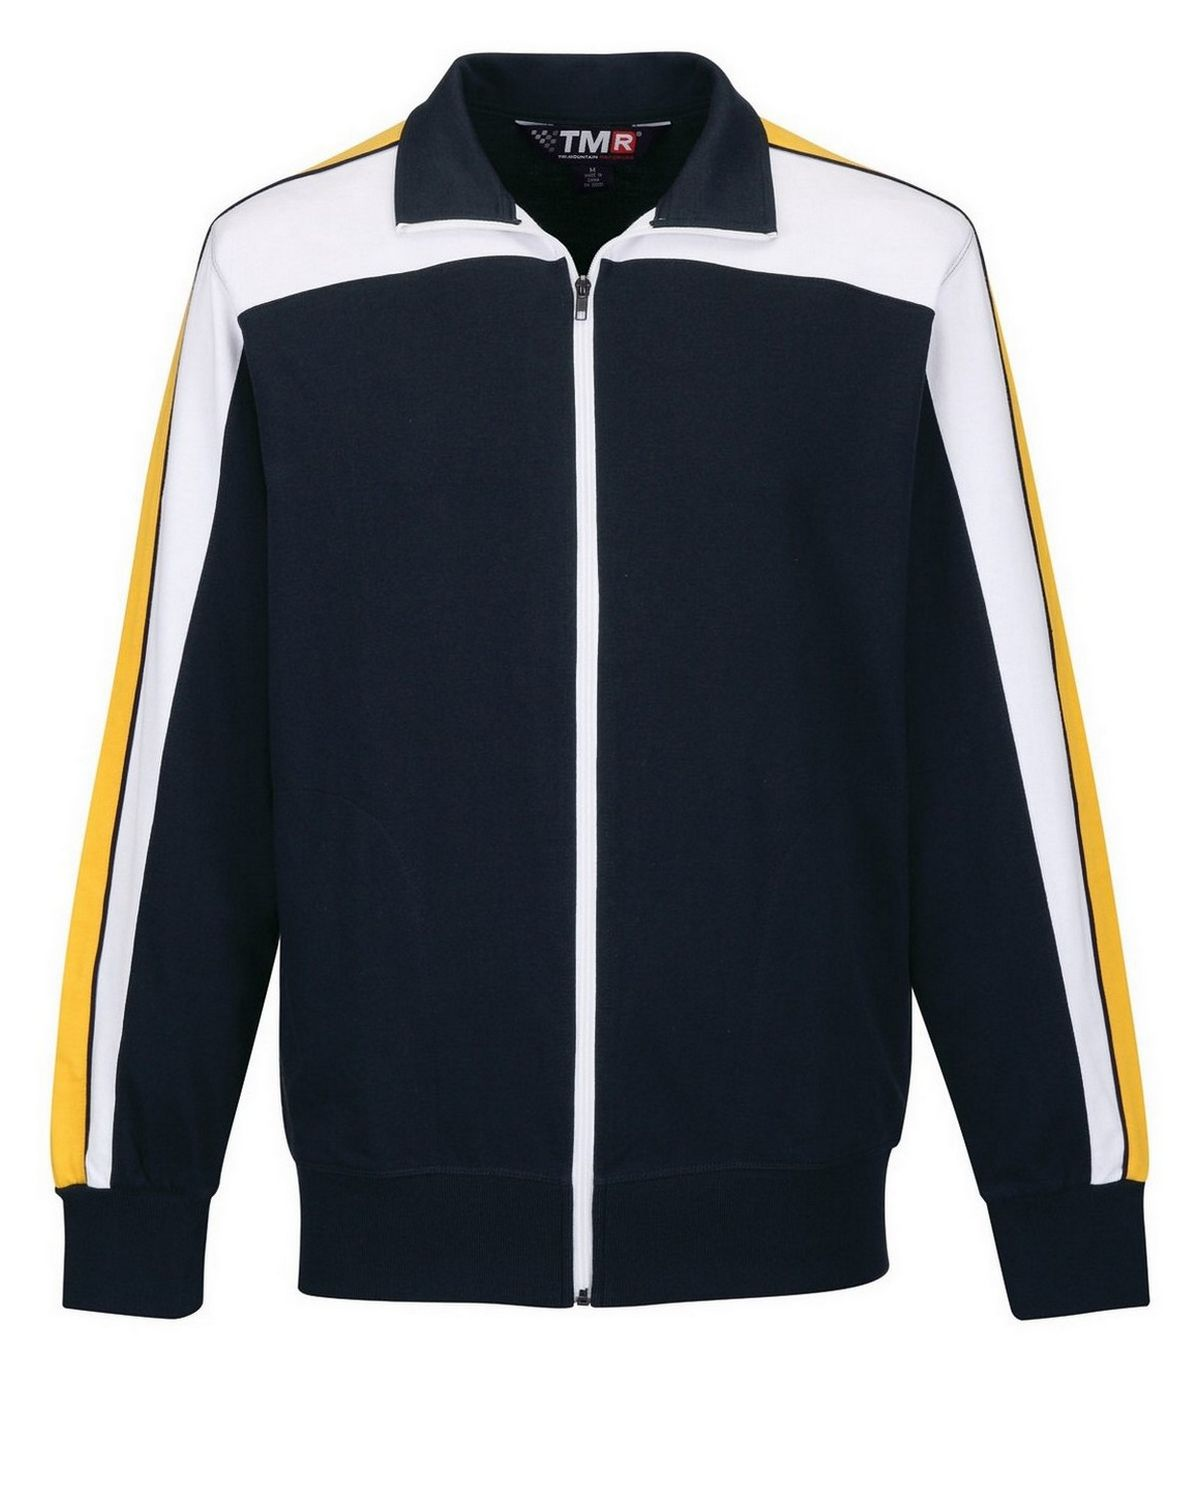 Tri-Mountain F635 Chicane - Navy/White/Yellow Gold - XL F635